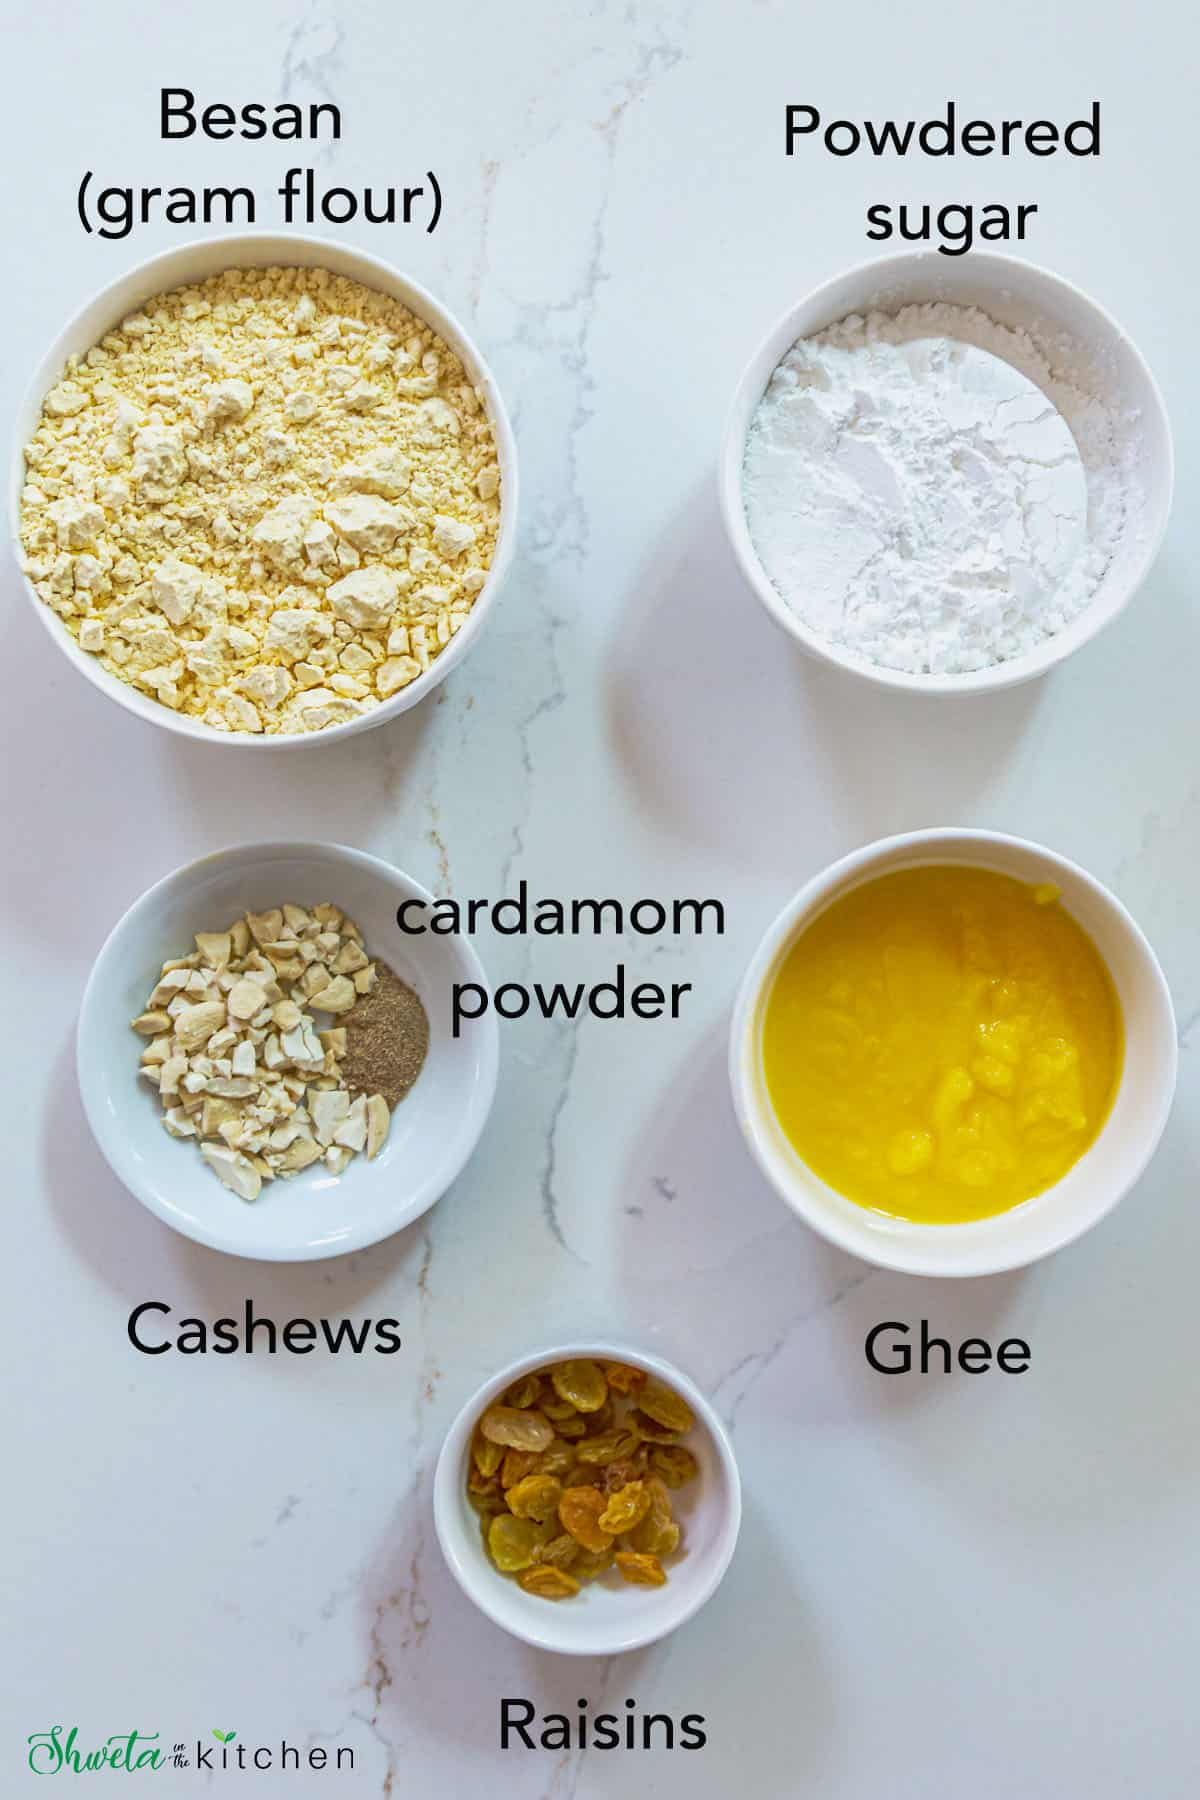 ingredients for besan ladoo recipe in white bowls on a marble surface